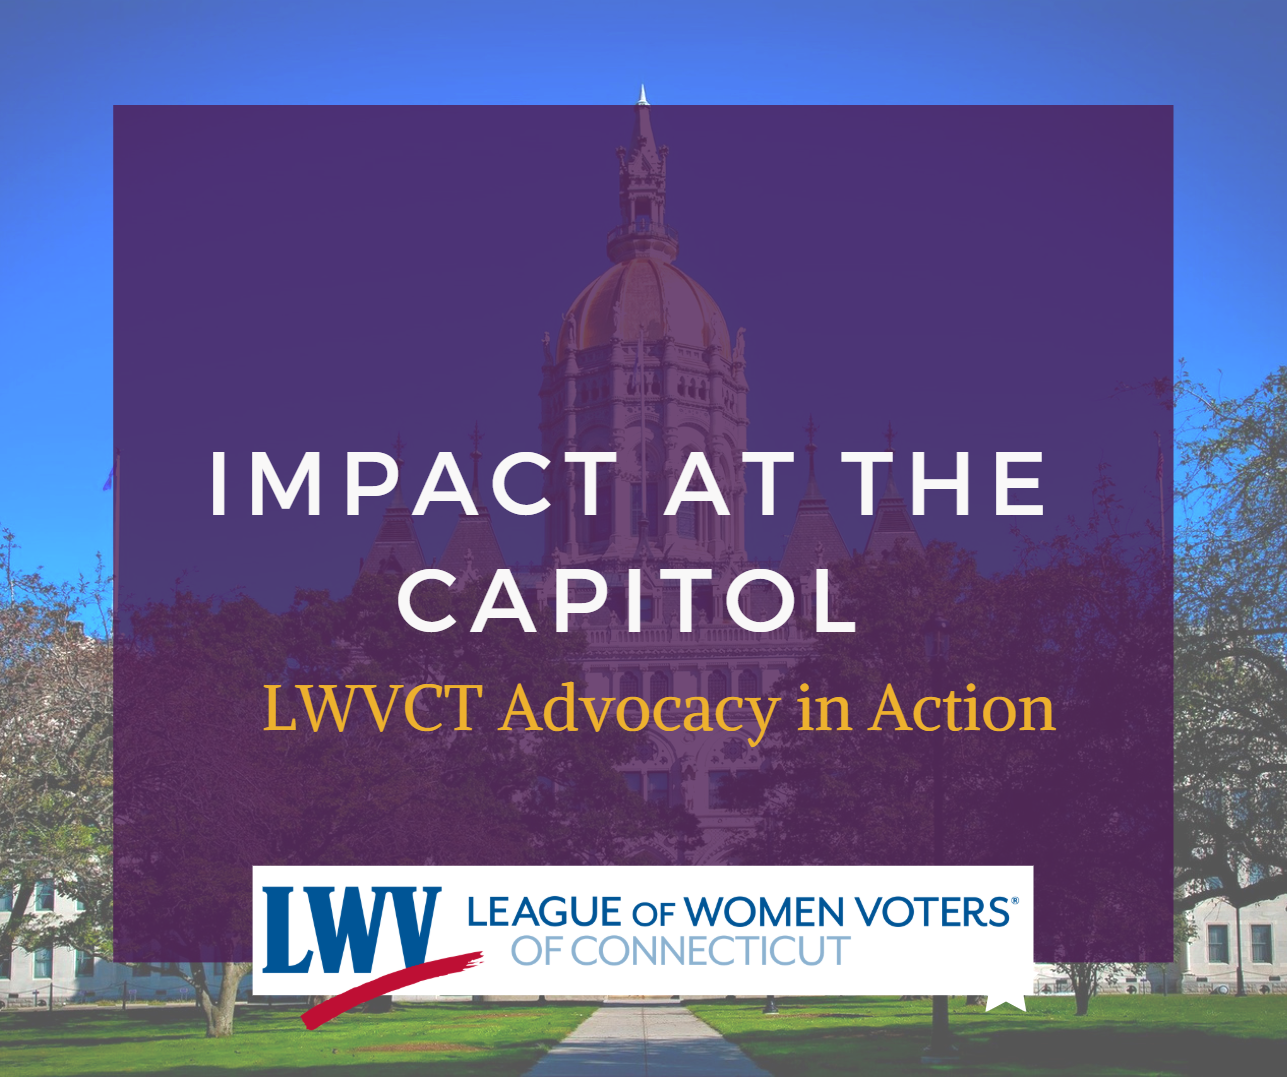 Impact at the Capitol LWVCT Advocacy in Action Image